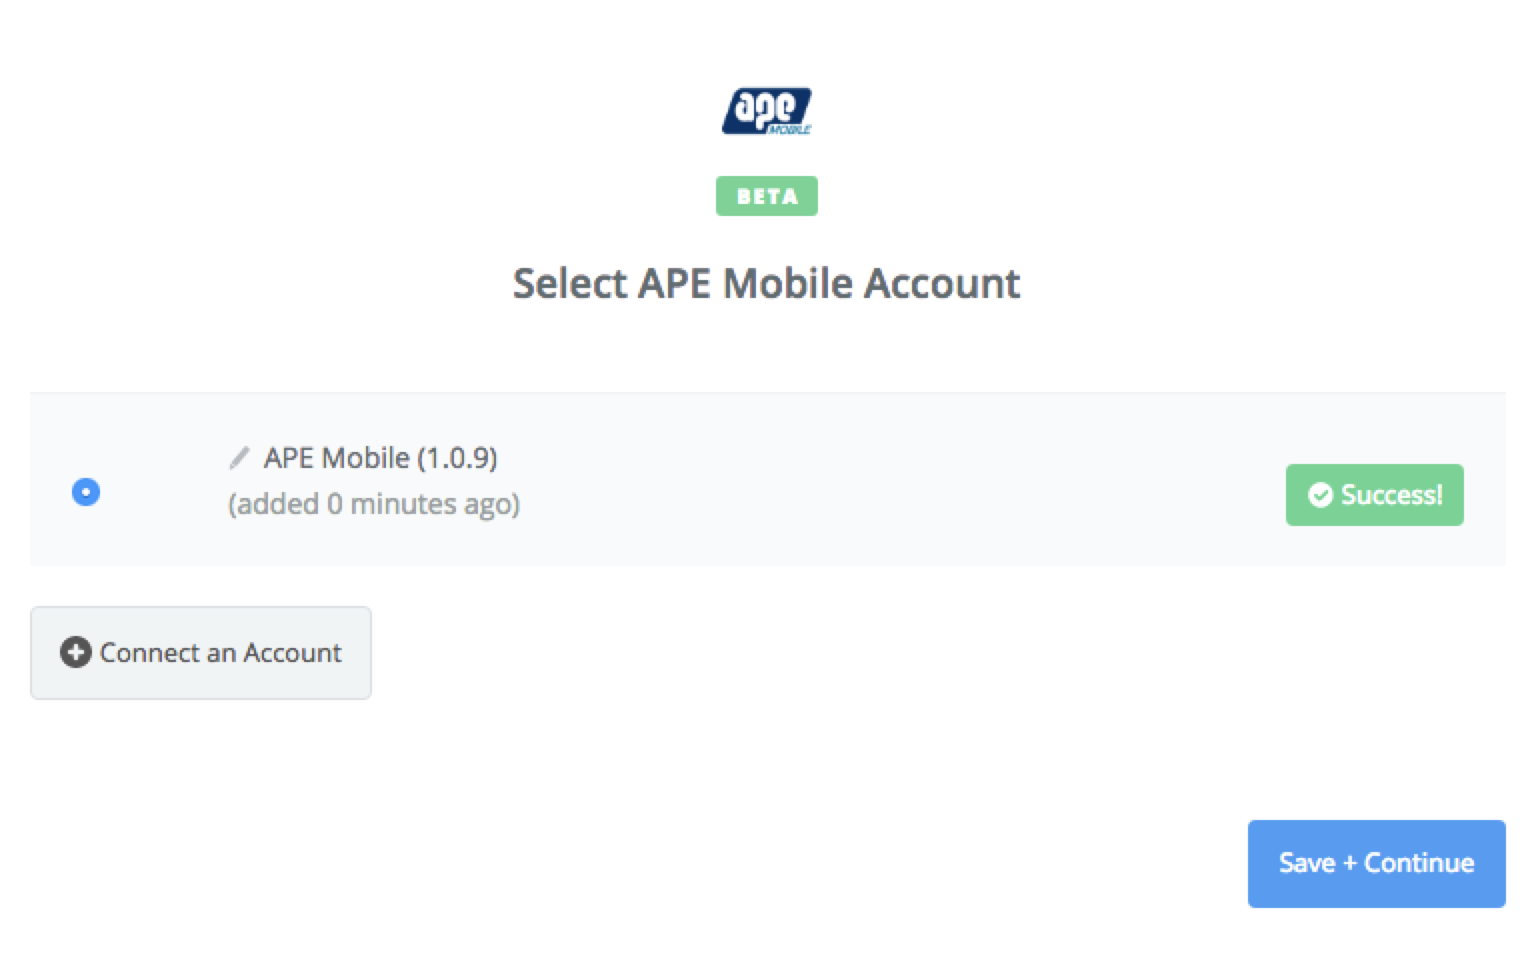 APE Mobile connection successfull